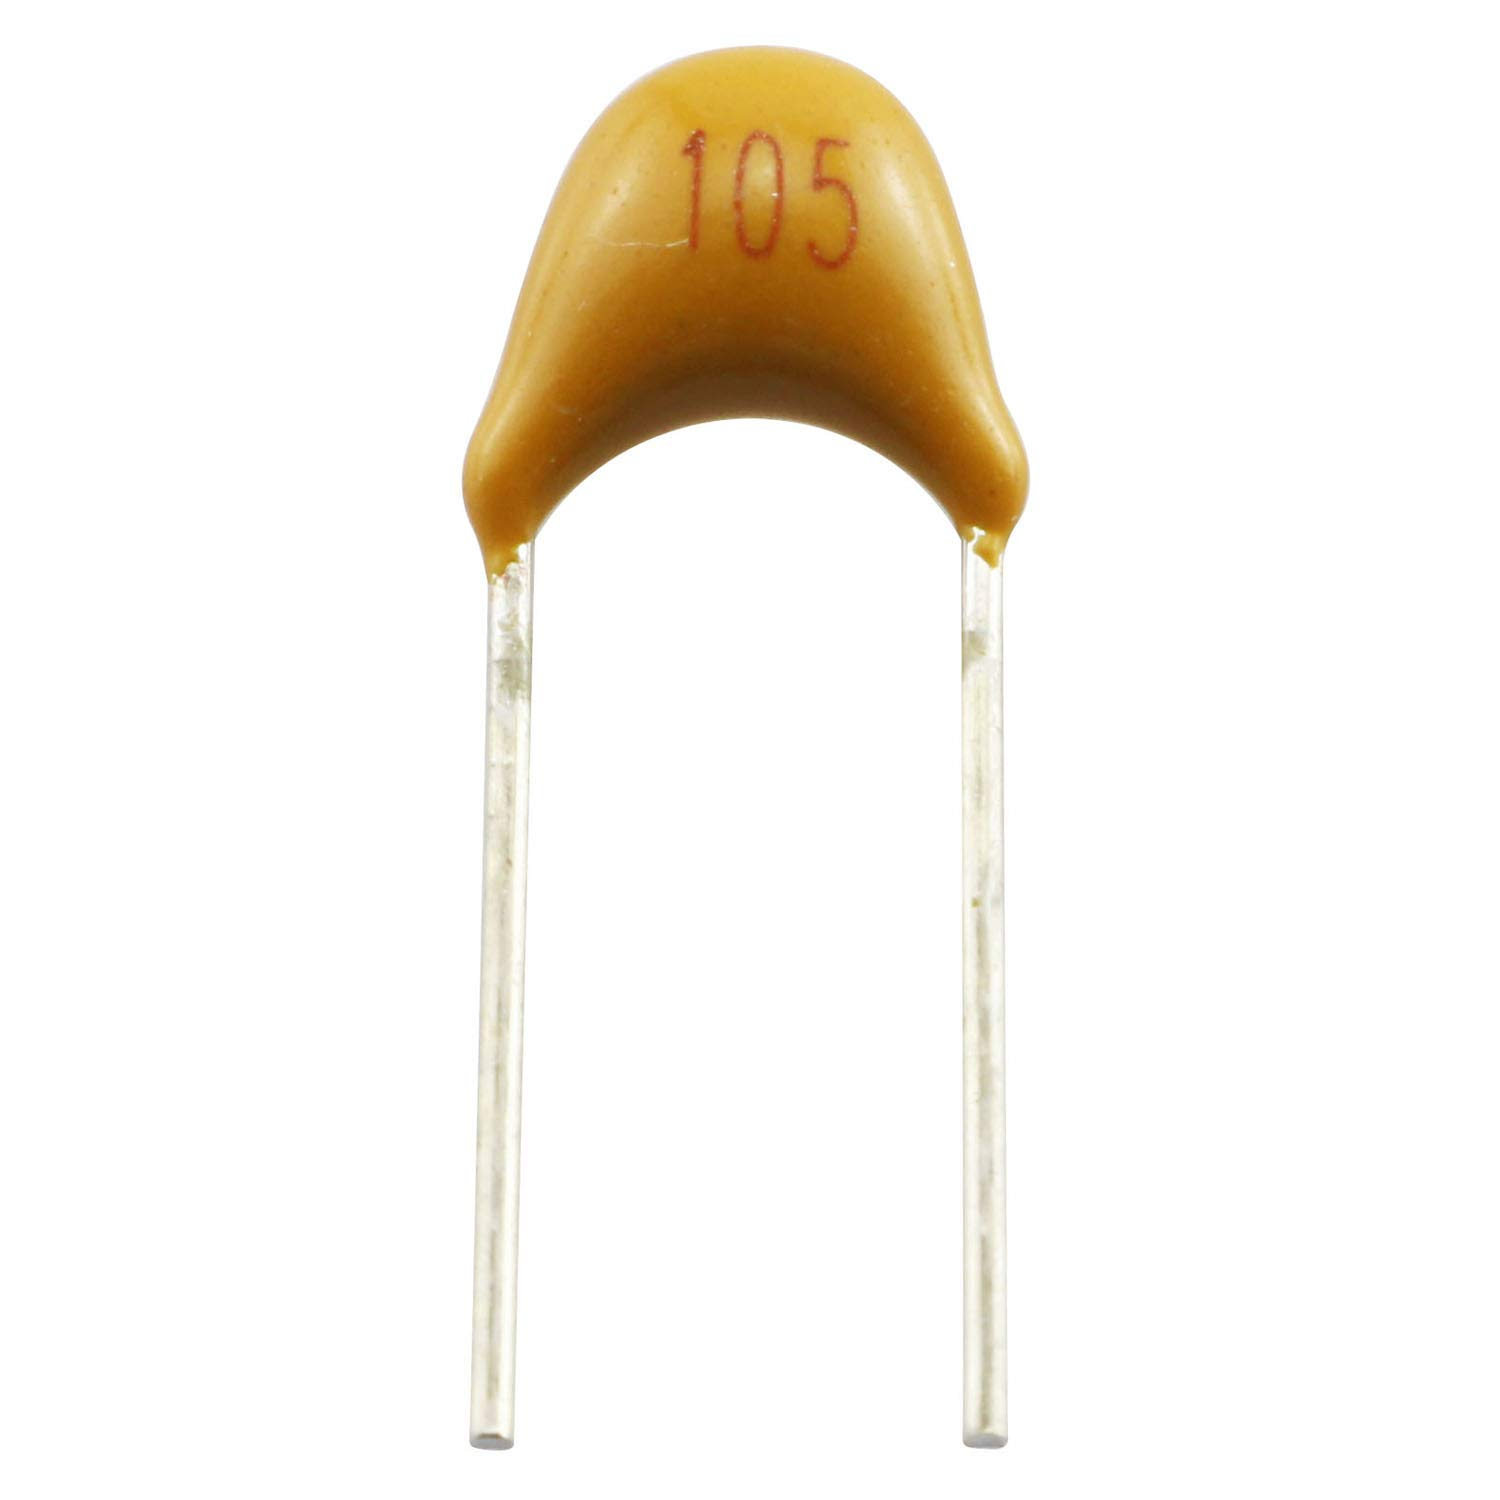 1UF 50V 18 Values Commonly Used Electronic Component DIY Assortment Monolithic Ceramic Capacitors Assorted Kit RLECS 180pcs 20PF-105